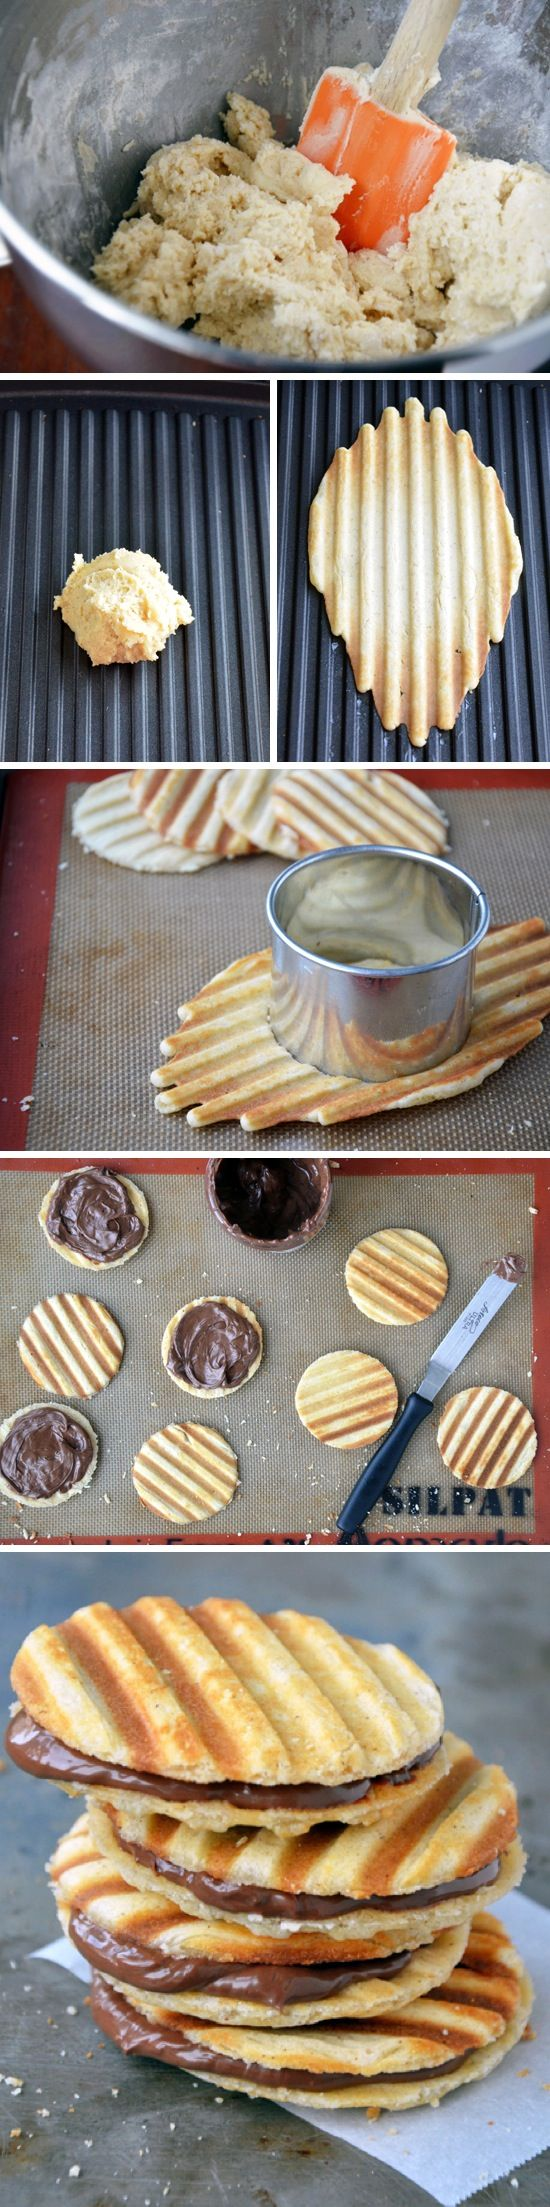 Nutella Waffle Sandwich Cookies (made on a panini press!) from justataste.com #recipe